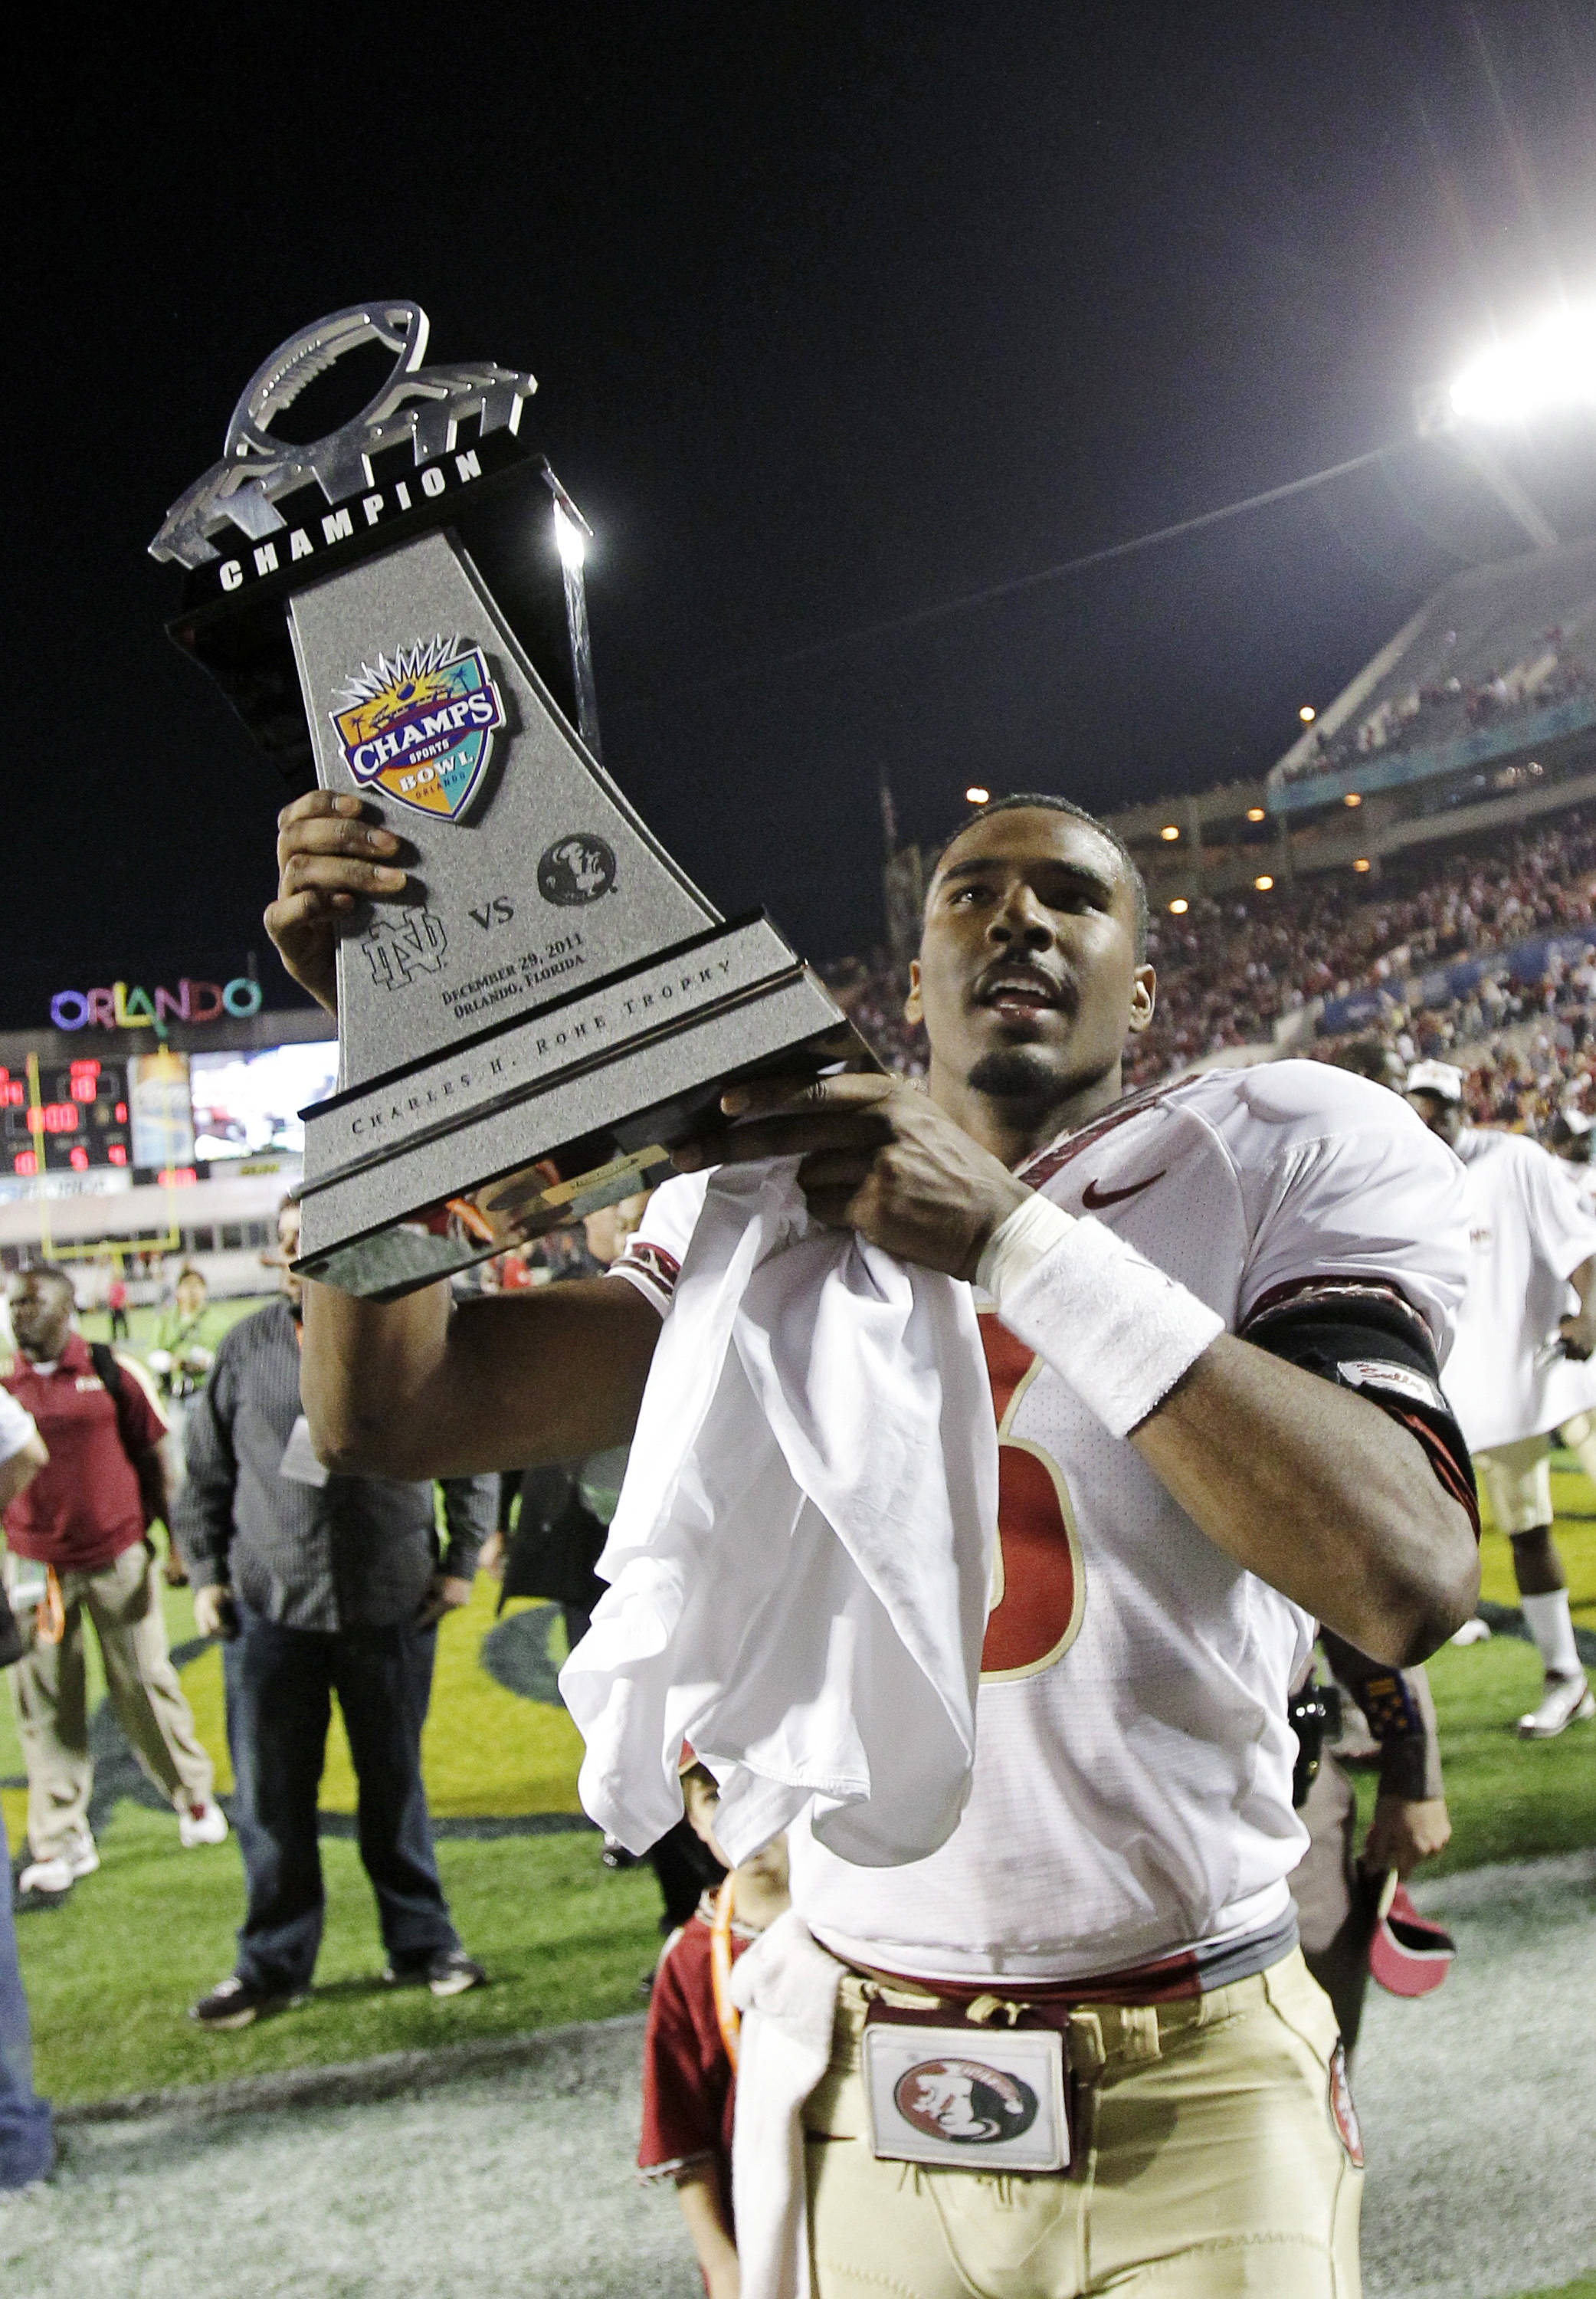 Florida State quarterback EJ Manuel carries the championship trophy off the field after defeating Notre Dame 18-14 in the Champs Sports Bowl. (AP Photo/John Raoux)